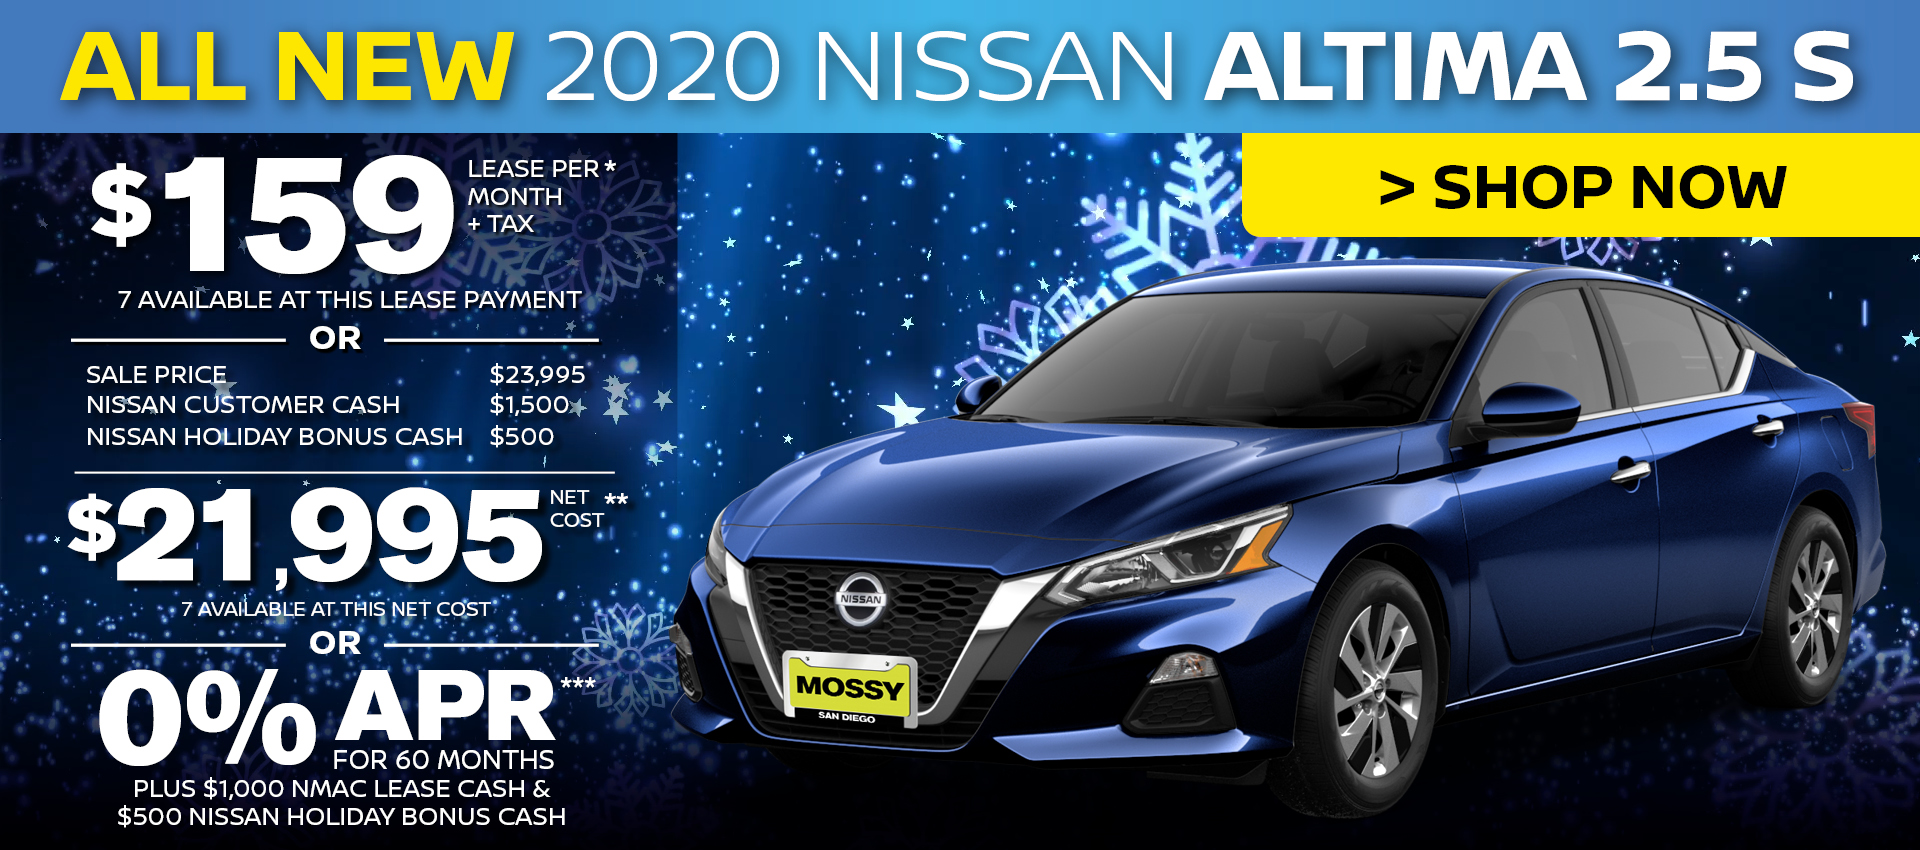 Mossy Nissan - Nissan Altima $159 Lease HP